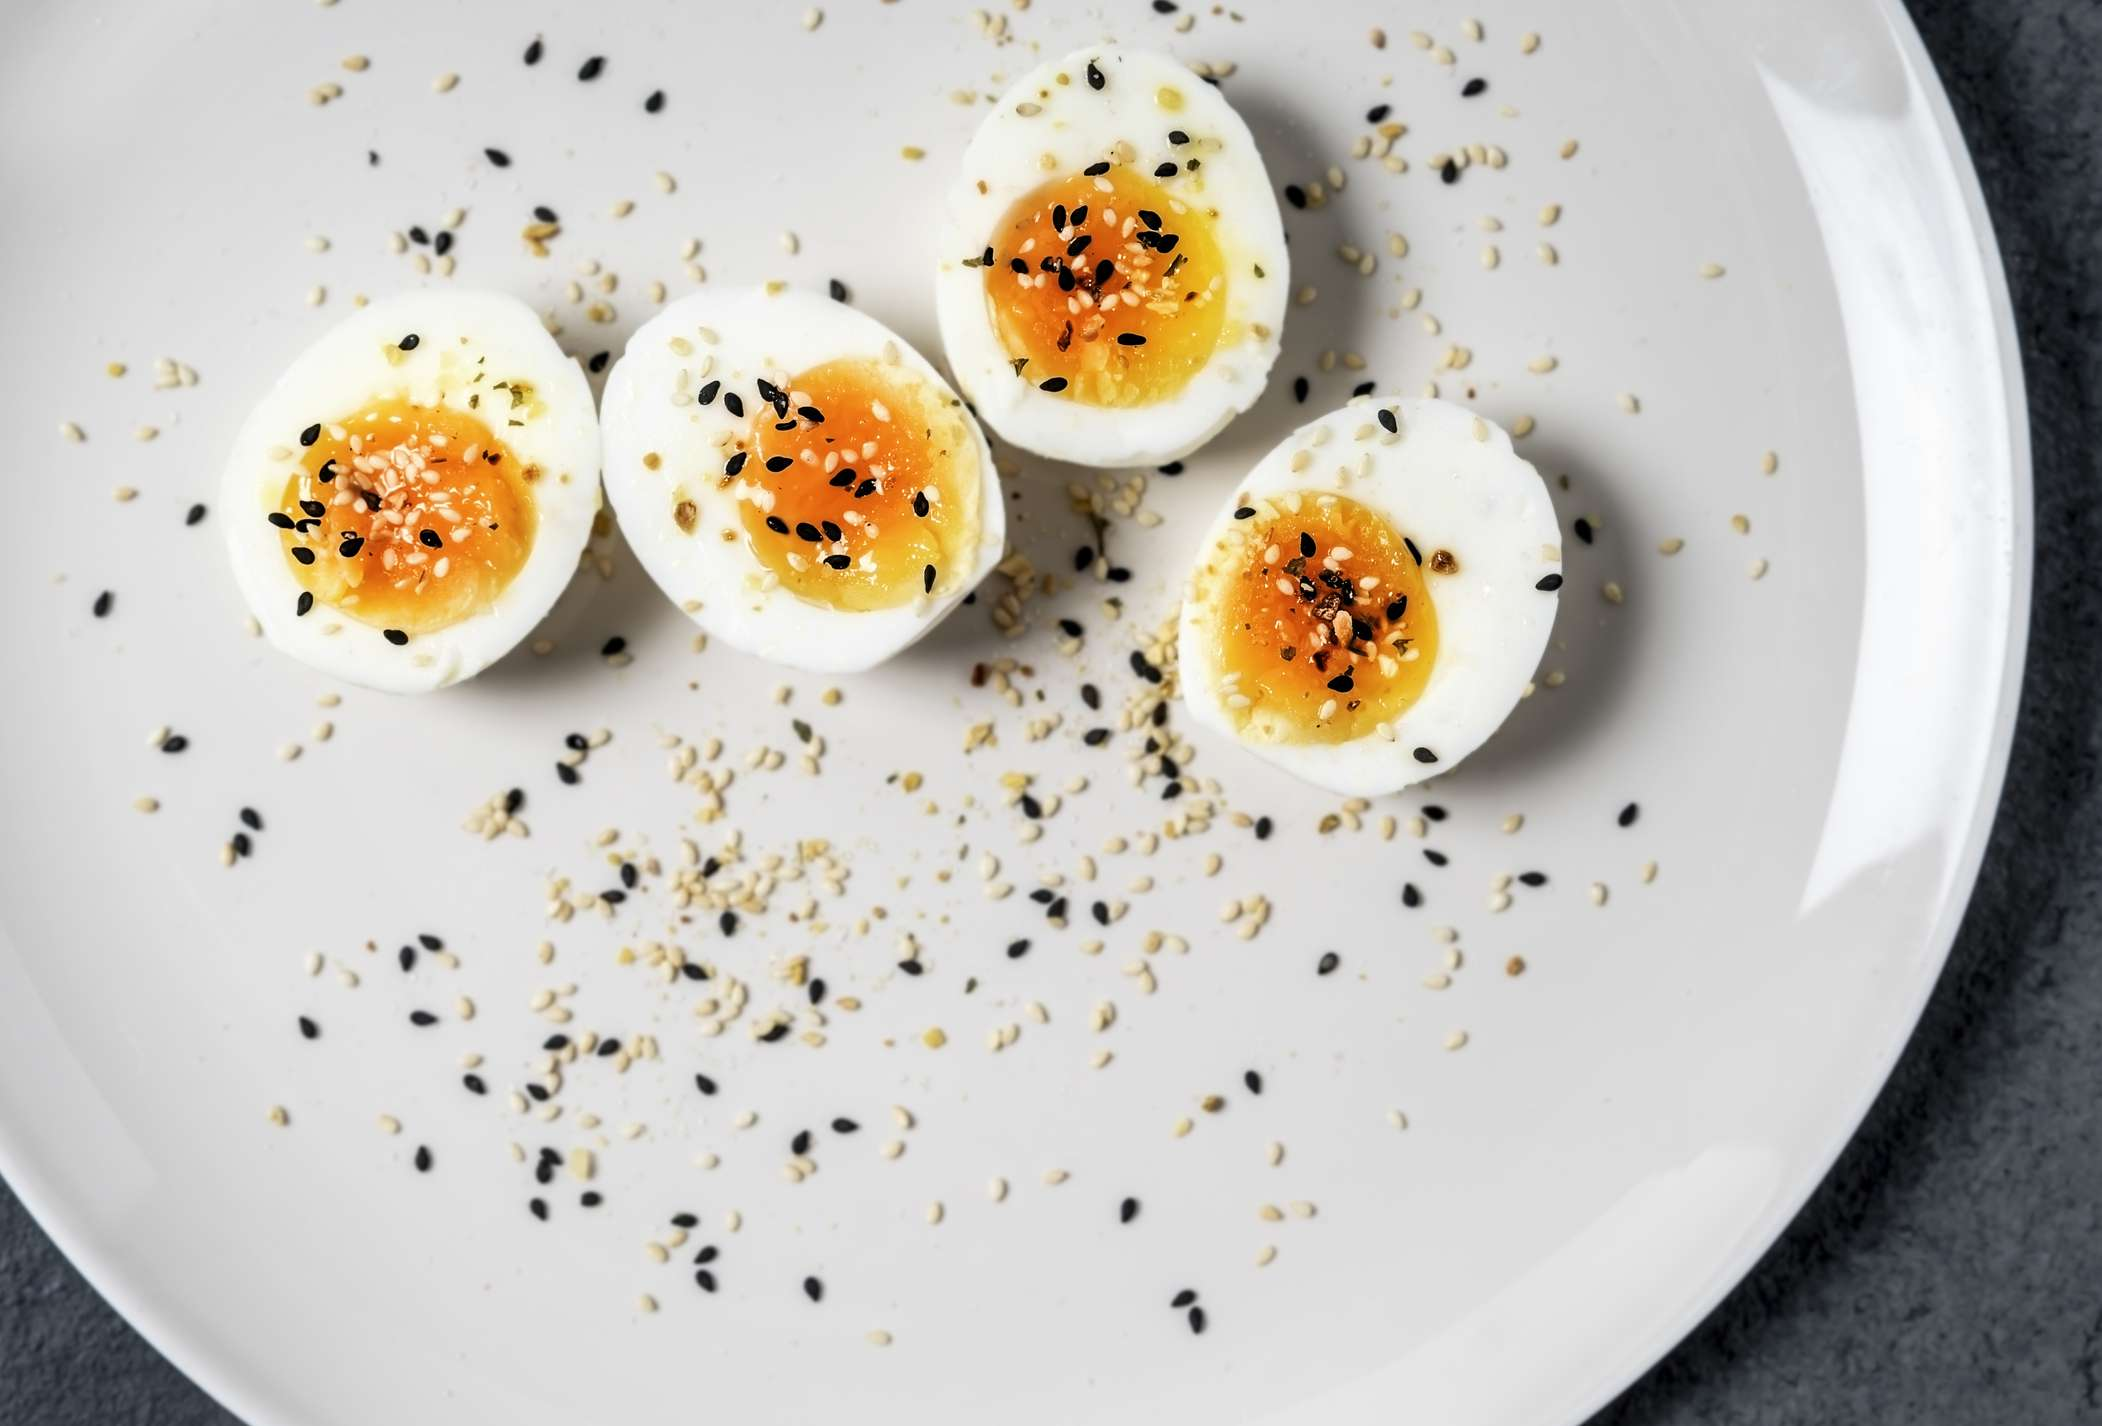 Two halved hard-boiled eggs on a plate, topped with sesame and poppy seeds.